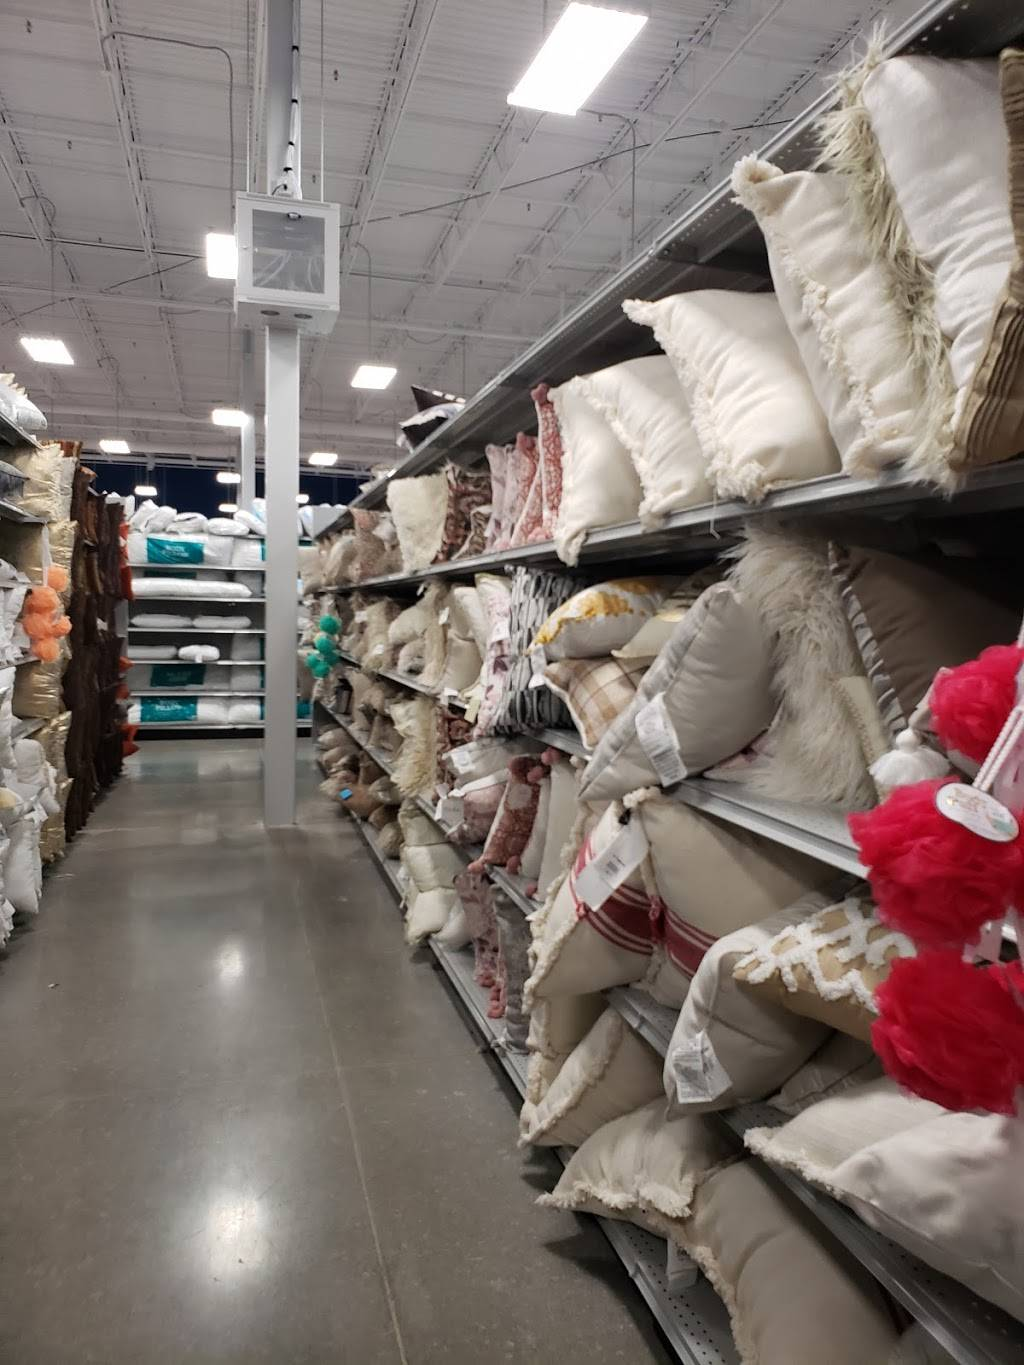 At Home - home goods store  | Photo 4 of 9 | Address: 6845 S 27th St, Lincoln, NE 68512, USA | Phone: (402) 417-1000